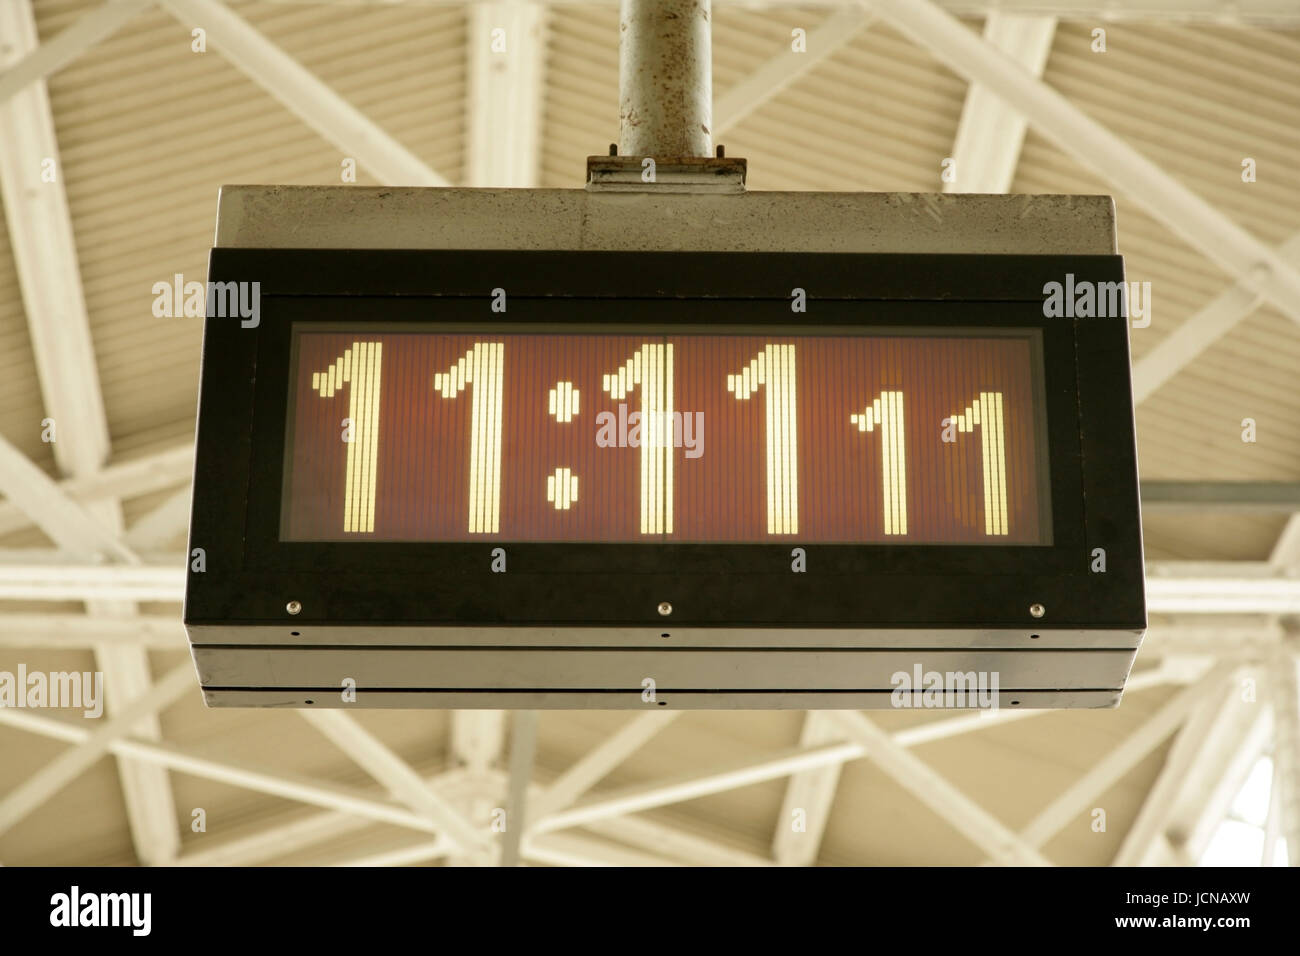 Digital clock reading eleven minutes and eleven seconds past eleven - Stock Image